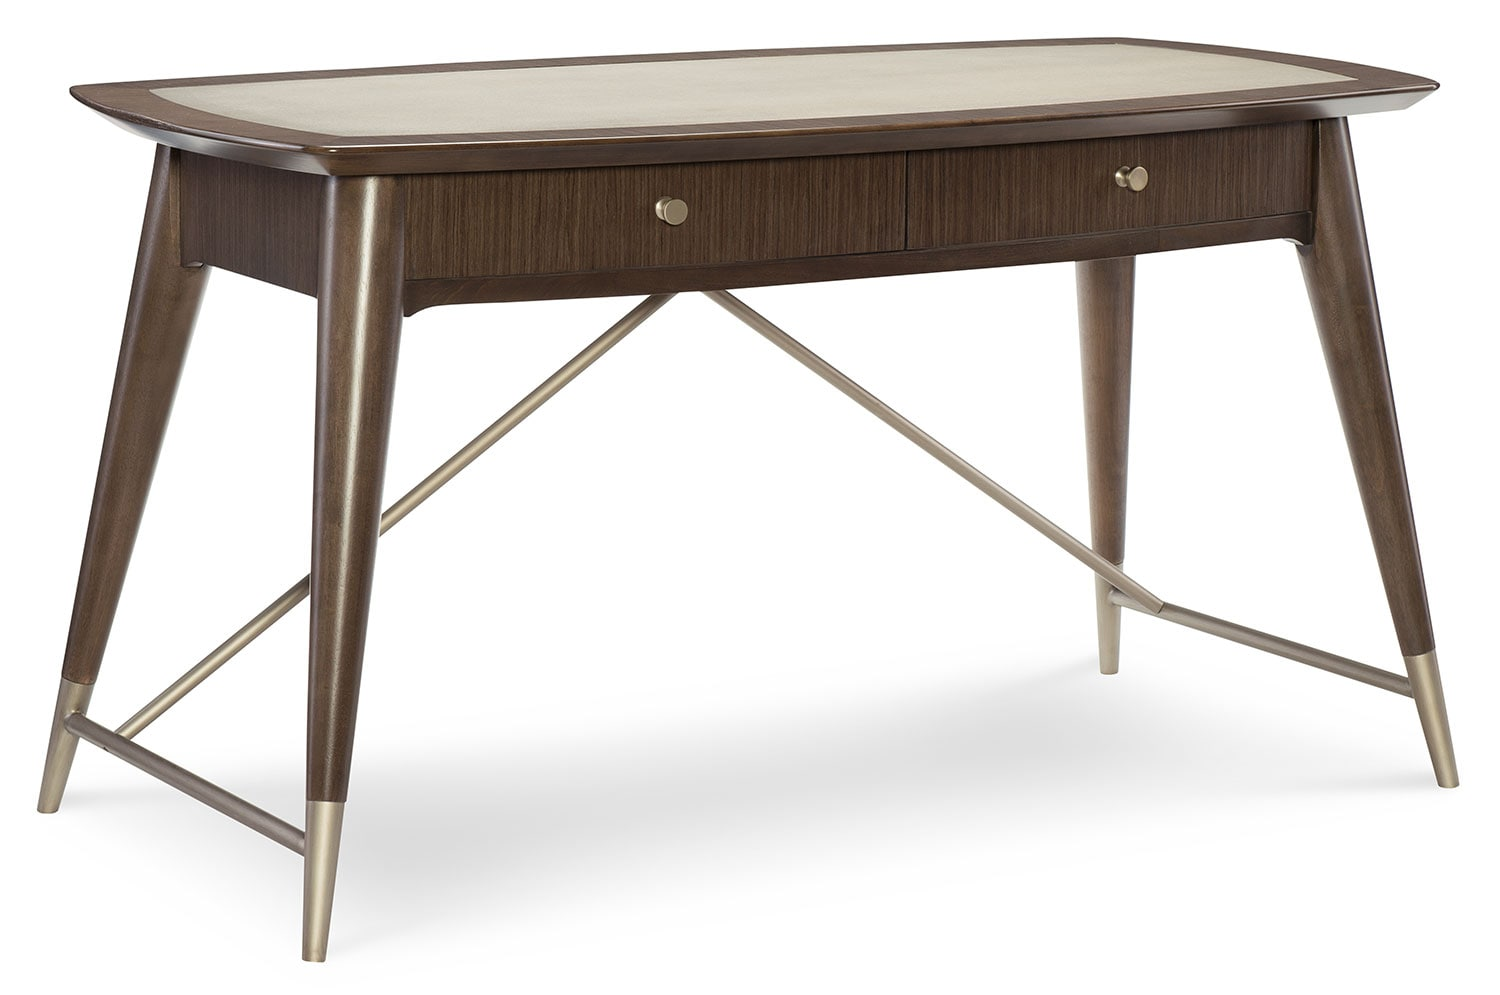 Home Office Furniture - Rachael Ray Soho Desk - Ash Brown